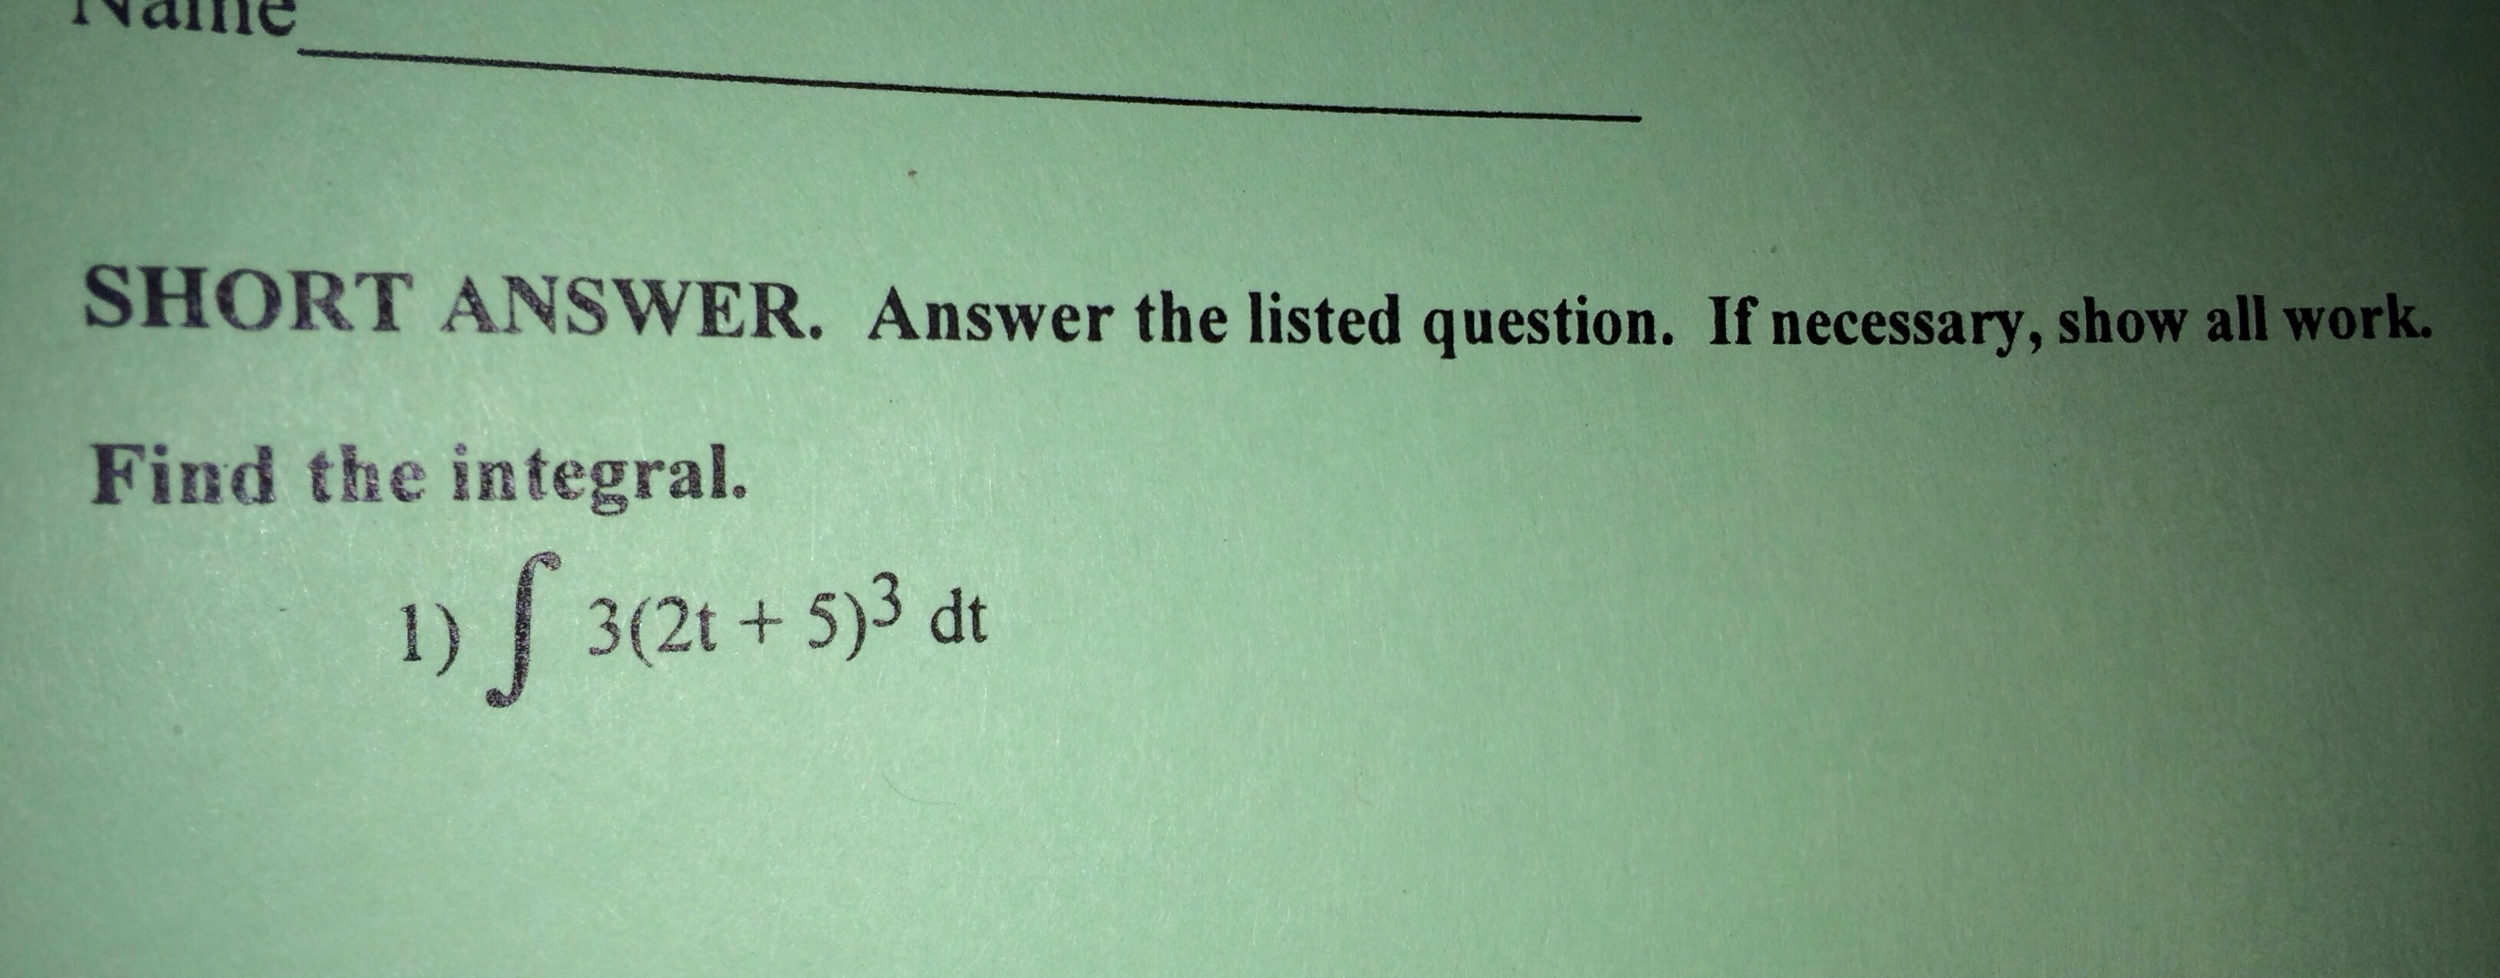 Answer the listed question. If necessary, show all